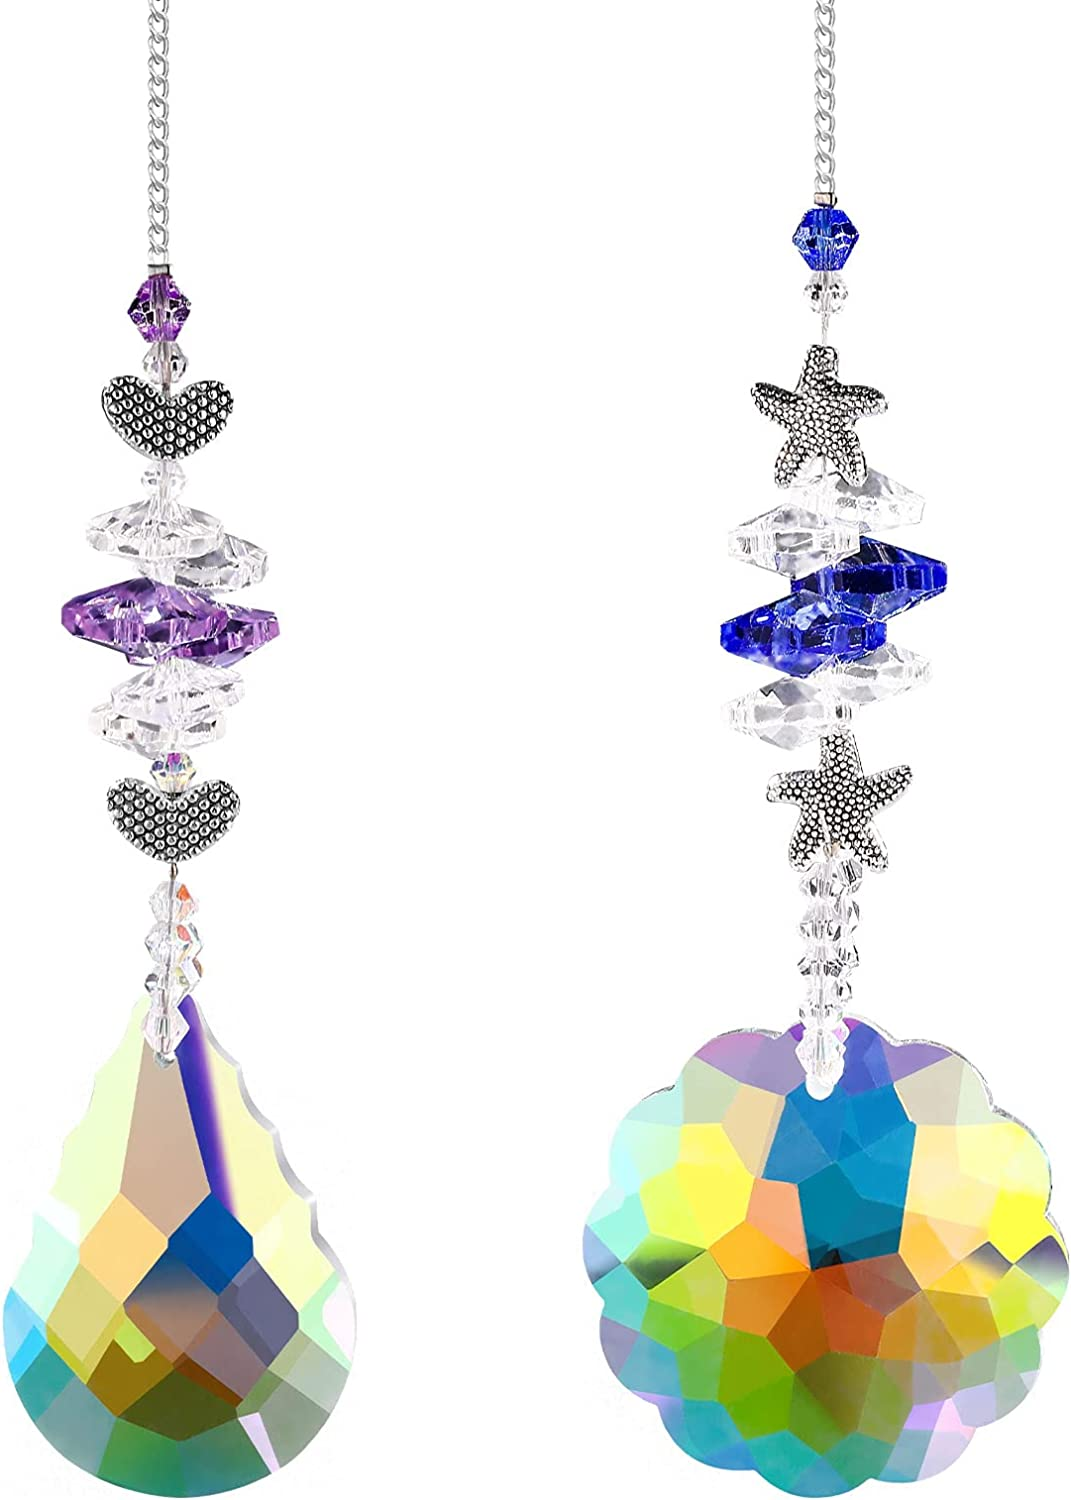 GOUHRRY 2 Pieces Ultra-Cheap Deals Crystals Ranking TOP2 Suncatcher Heart Hanging Crystal Star